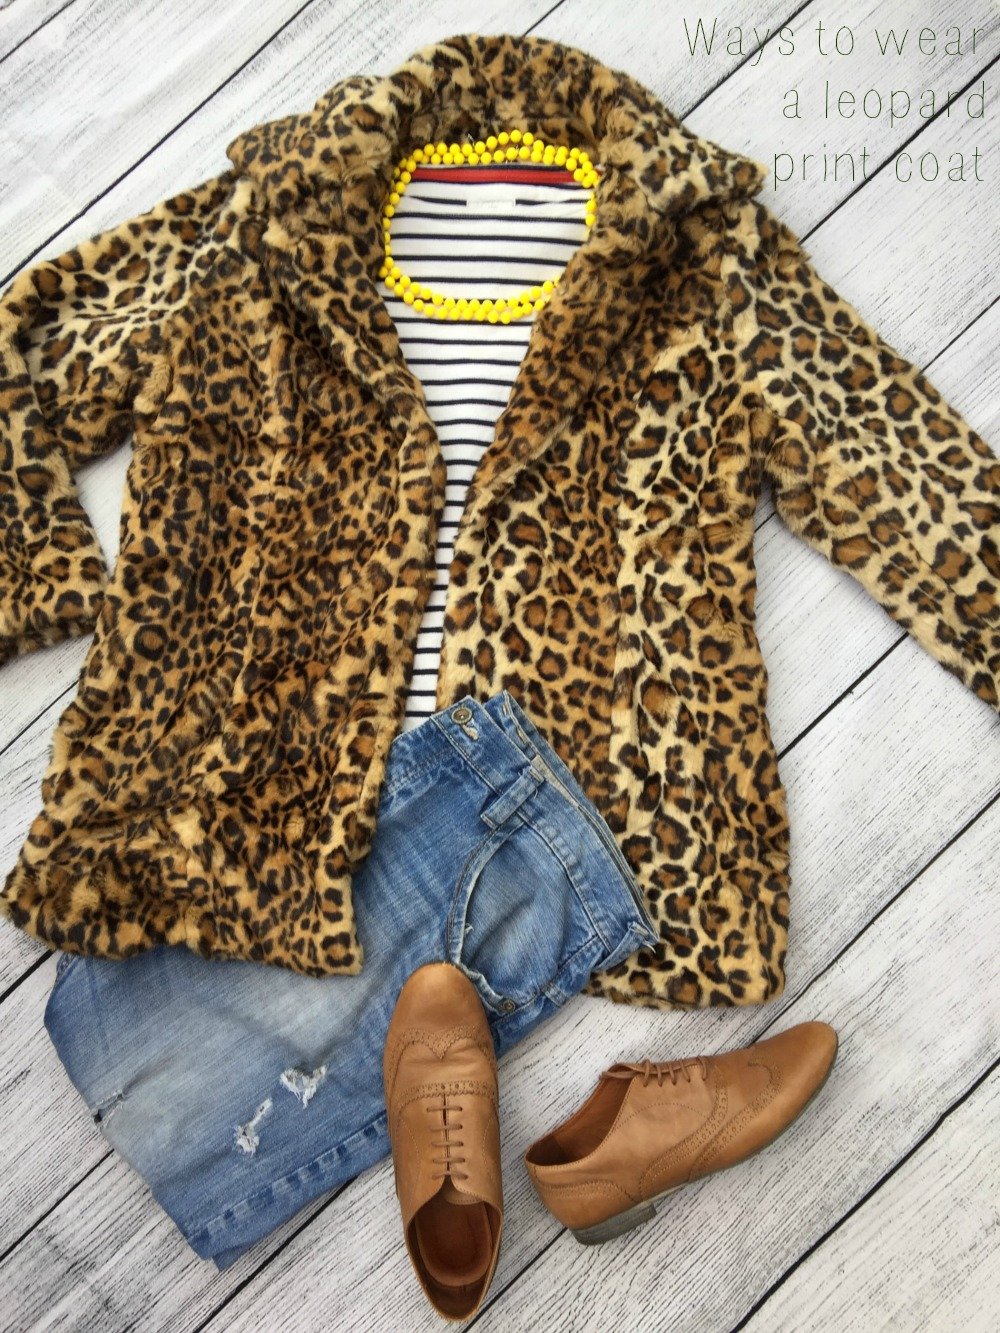 Leopard print coat hero shot